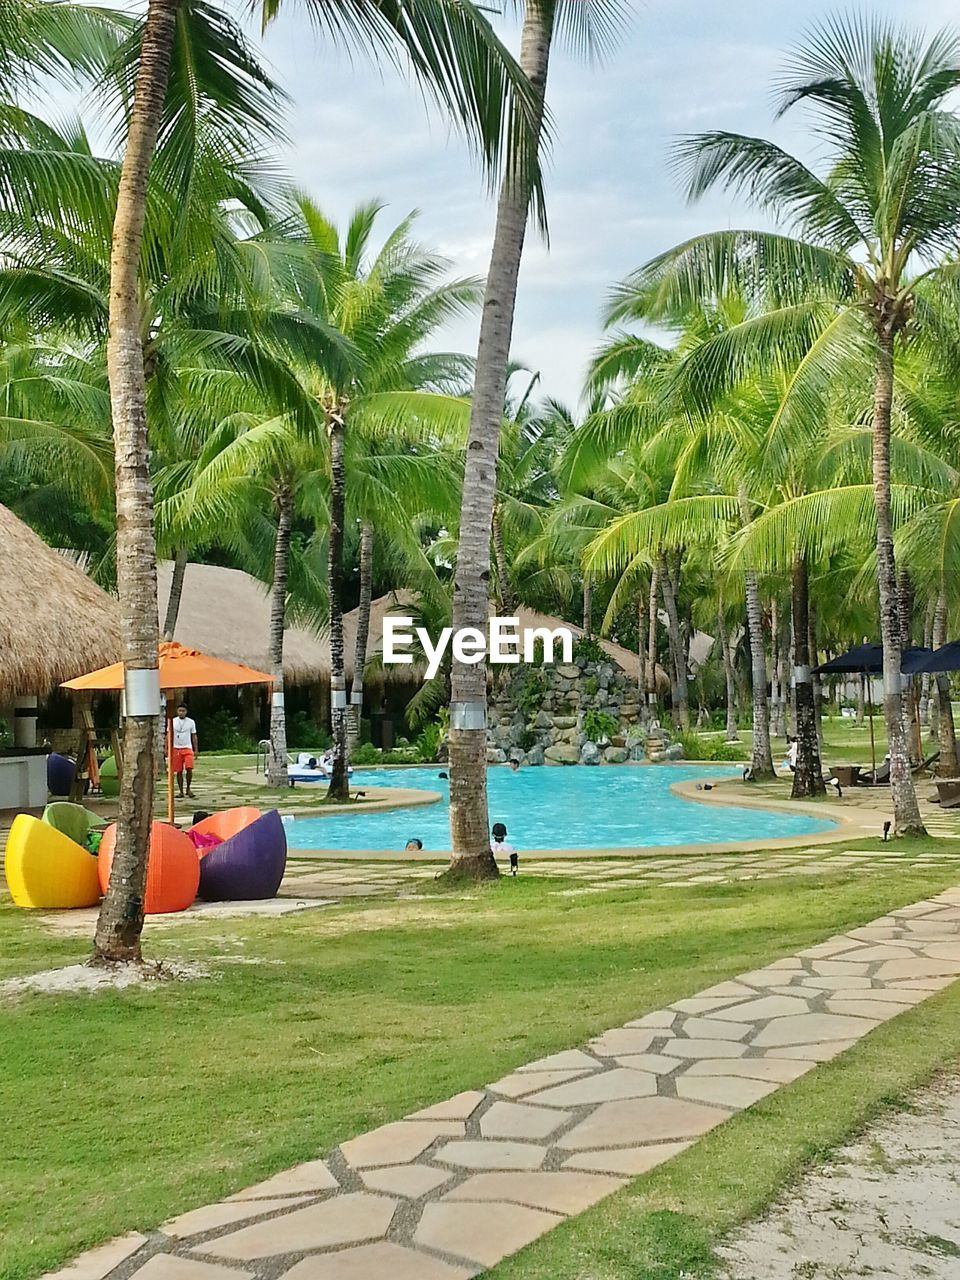 palm tree, tree, swimming pool, water, tree trunk, tourist resort, day, tranquility, growth, beach, sea, outdoors, no people, tranquil scene, sky, beauty in nature, nature, scenics, vacations